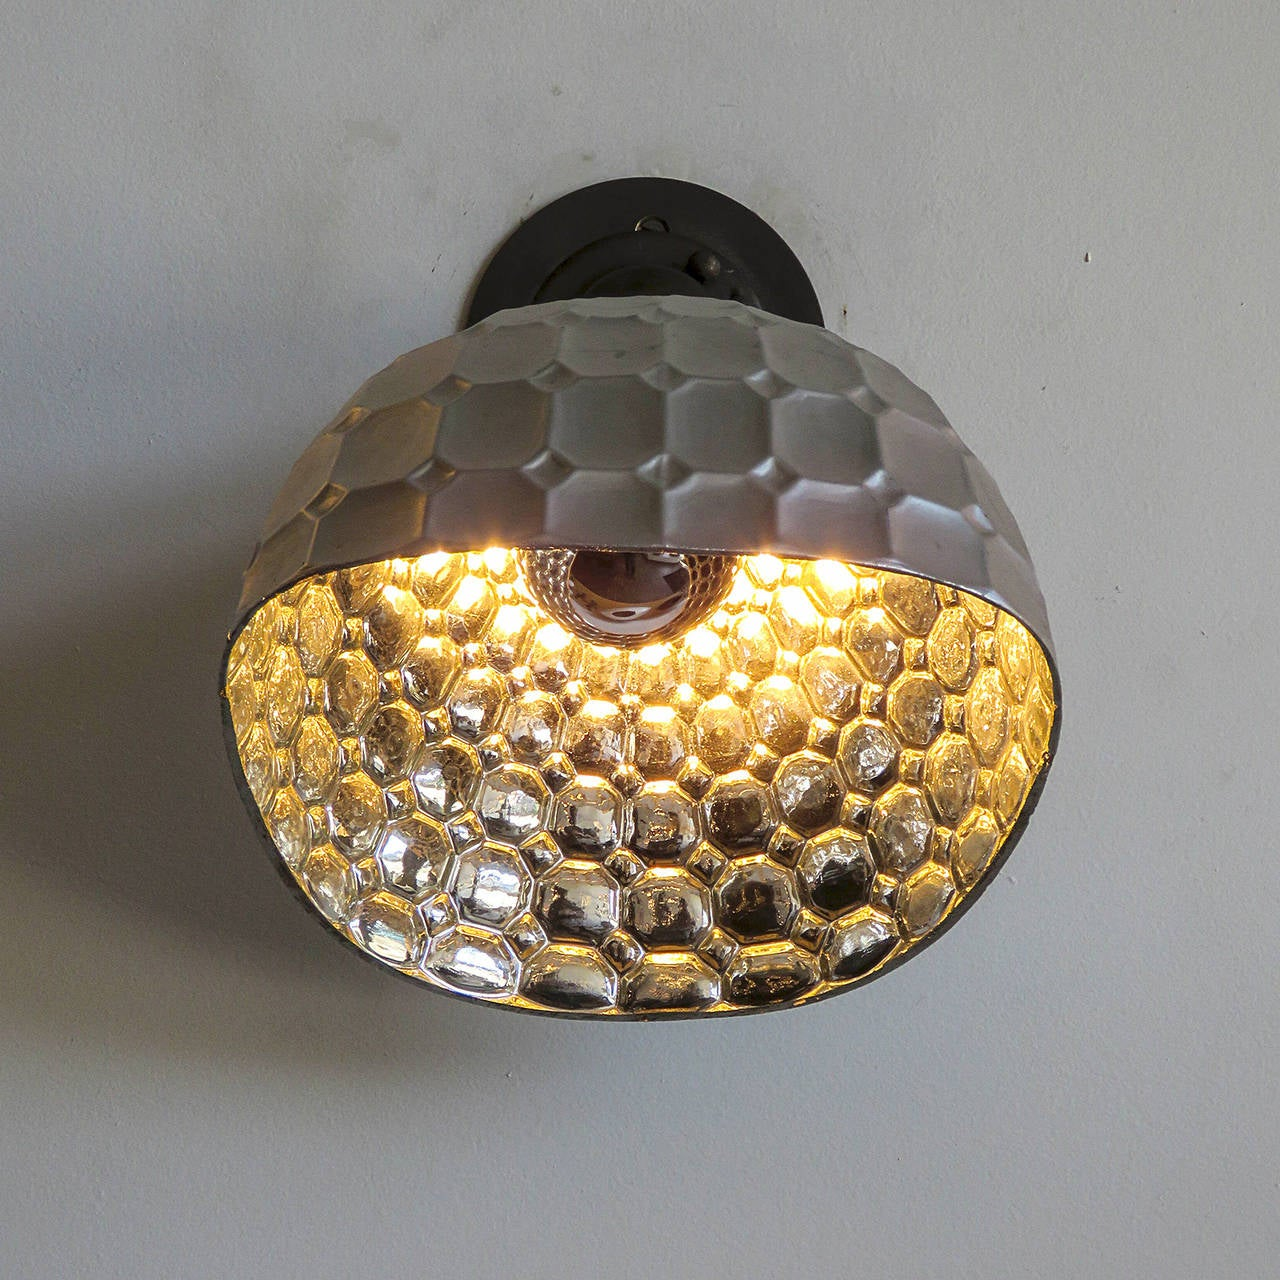 German Mercury Glass Wall Light by Reha For Sale at 1stdibs